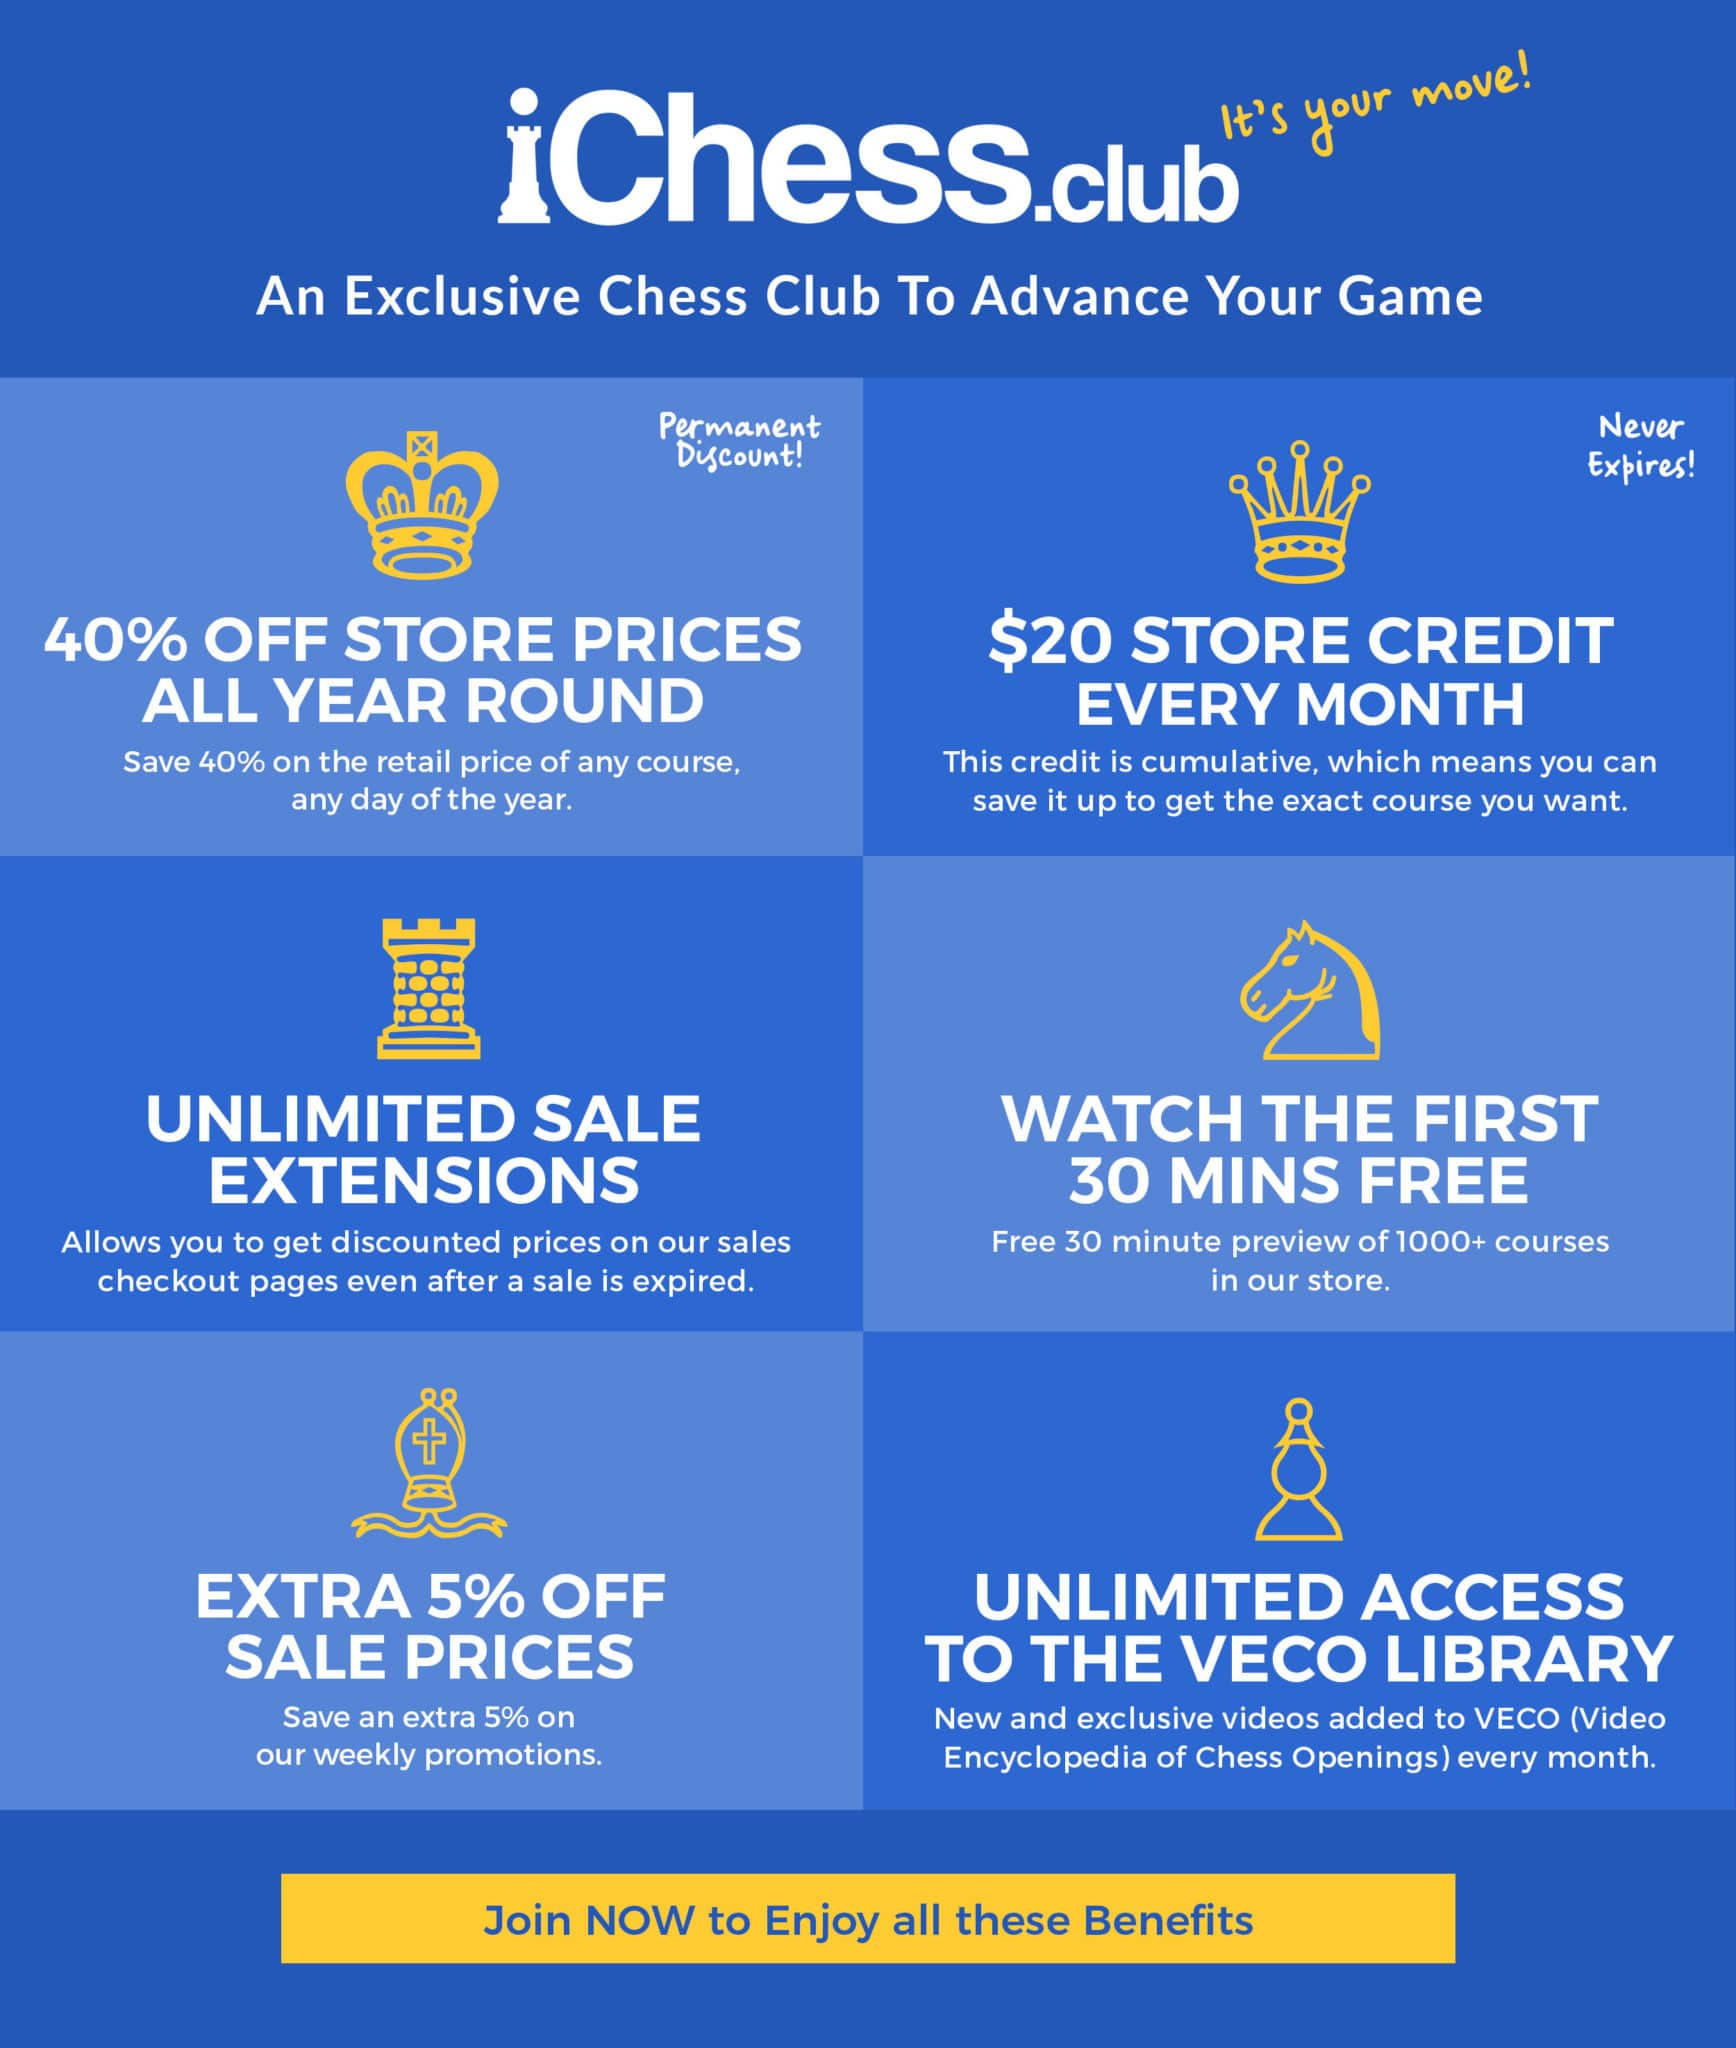 iChess Club: An Exclusive Chess Club To Advance Your Game